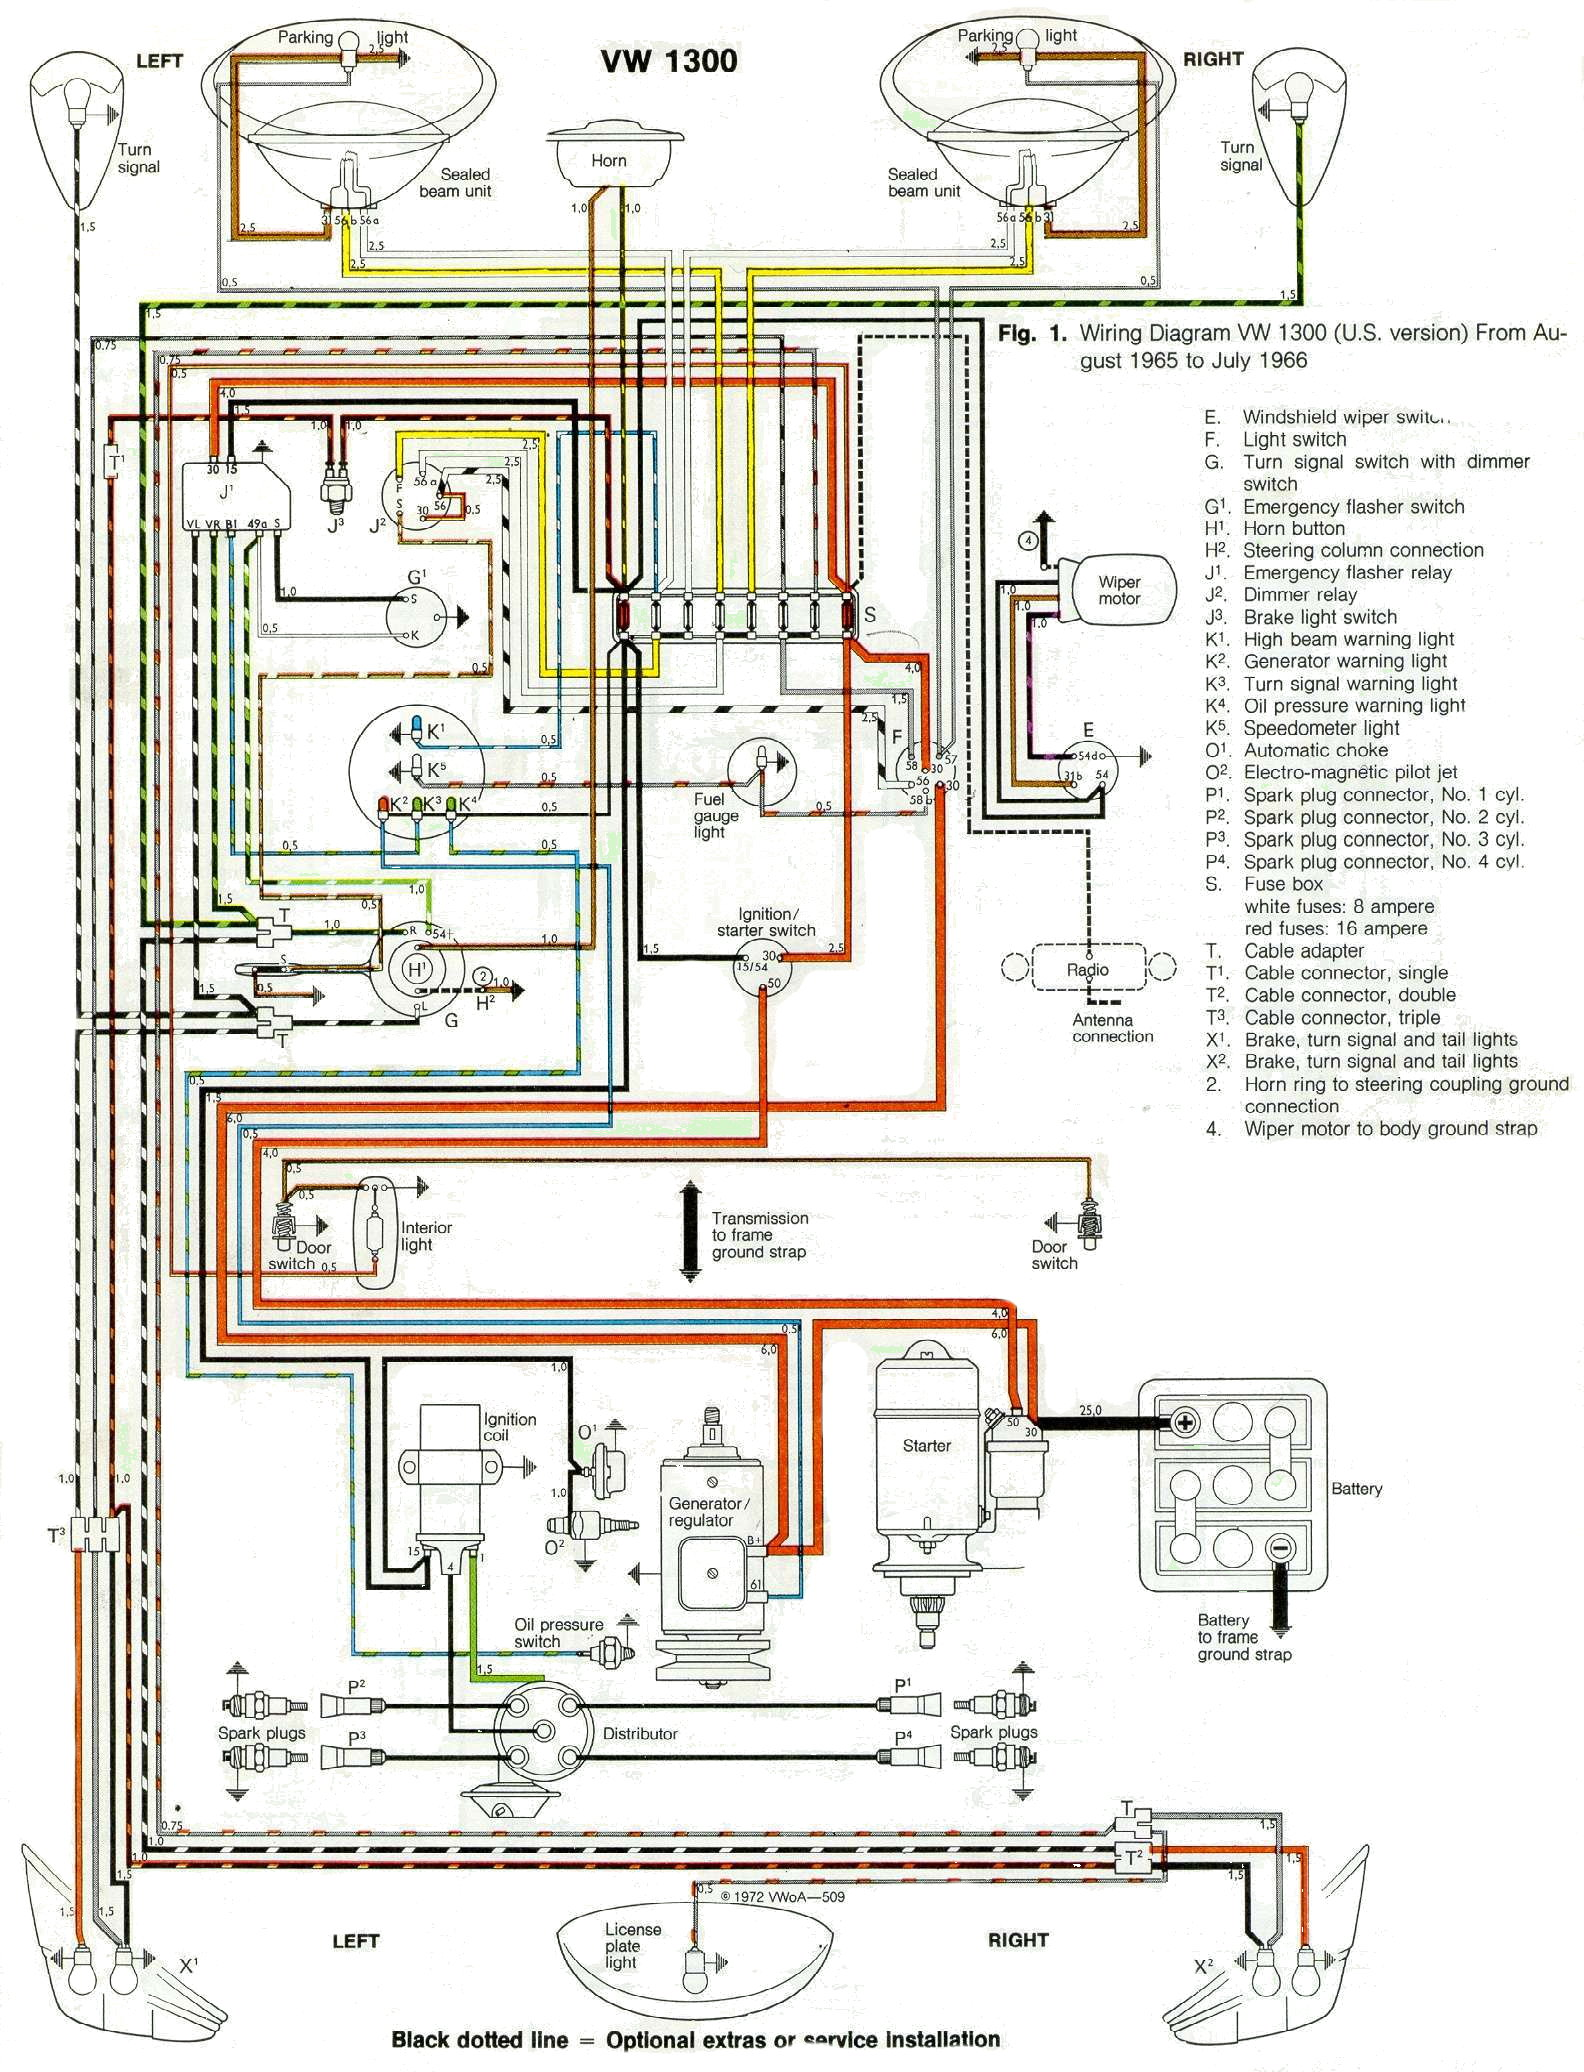 1966 Wiring 1966 wiring diagram vw bug wiring diagram at webbmarketing.co